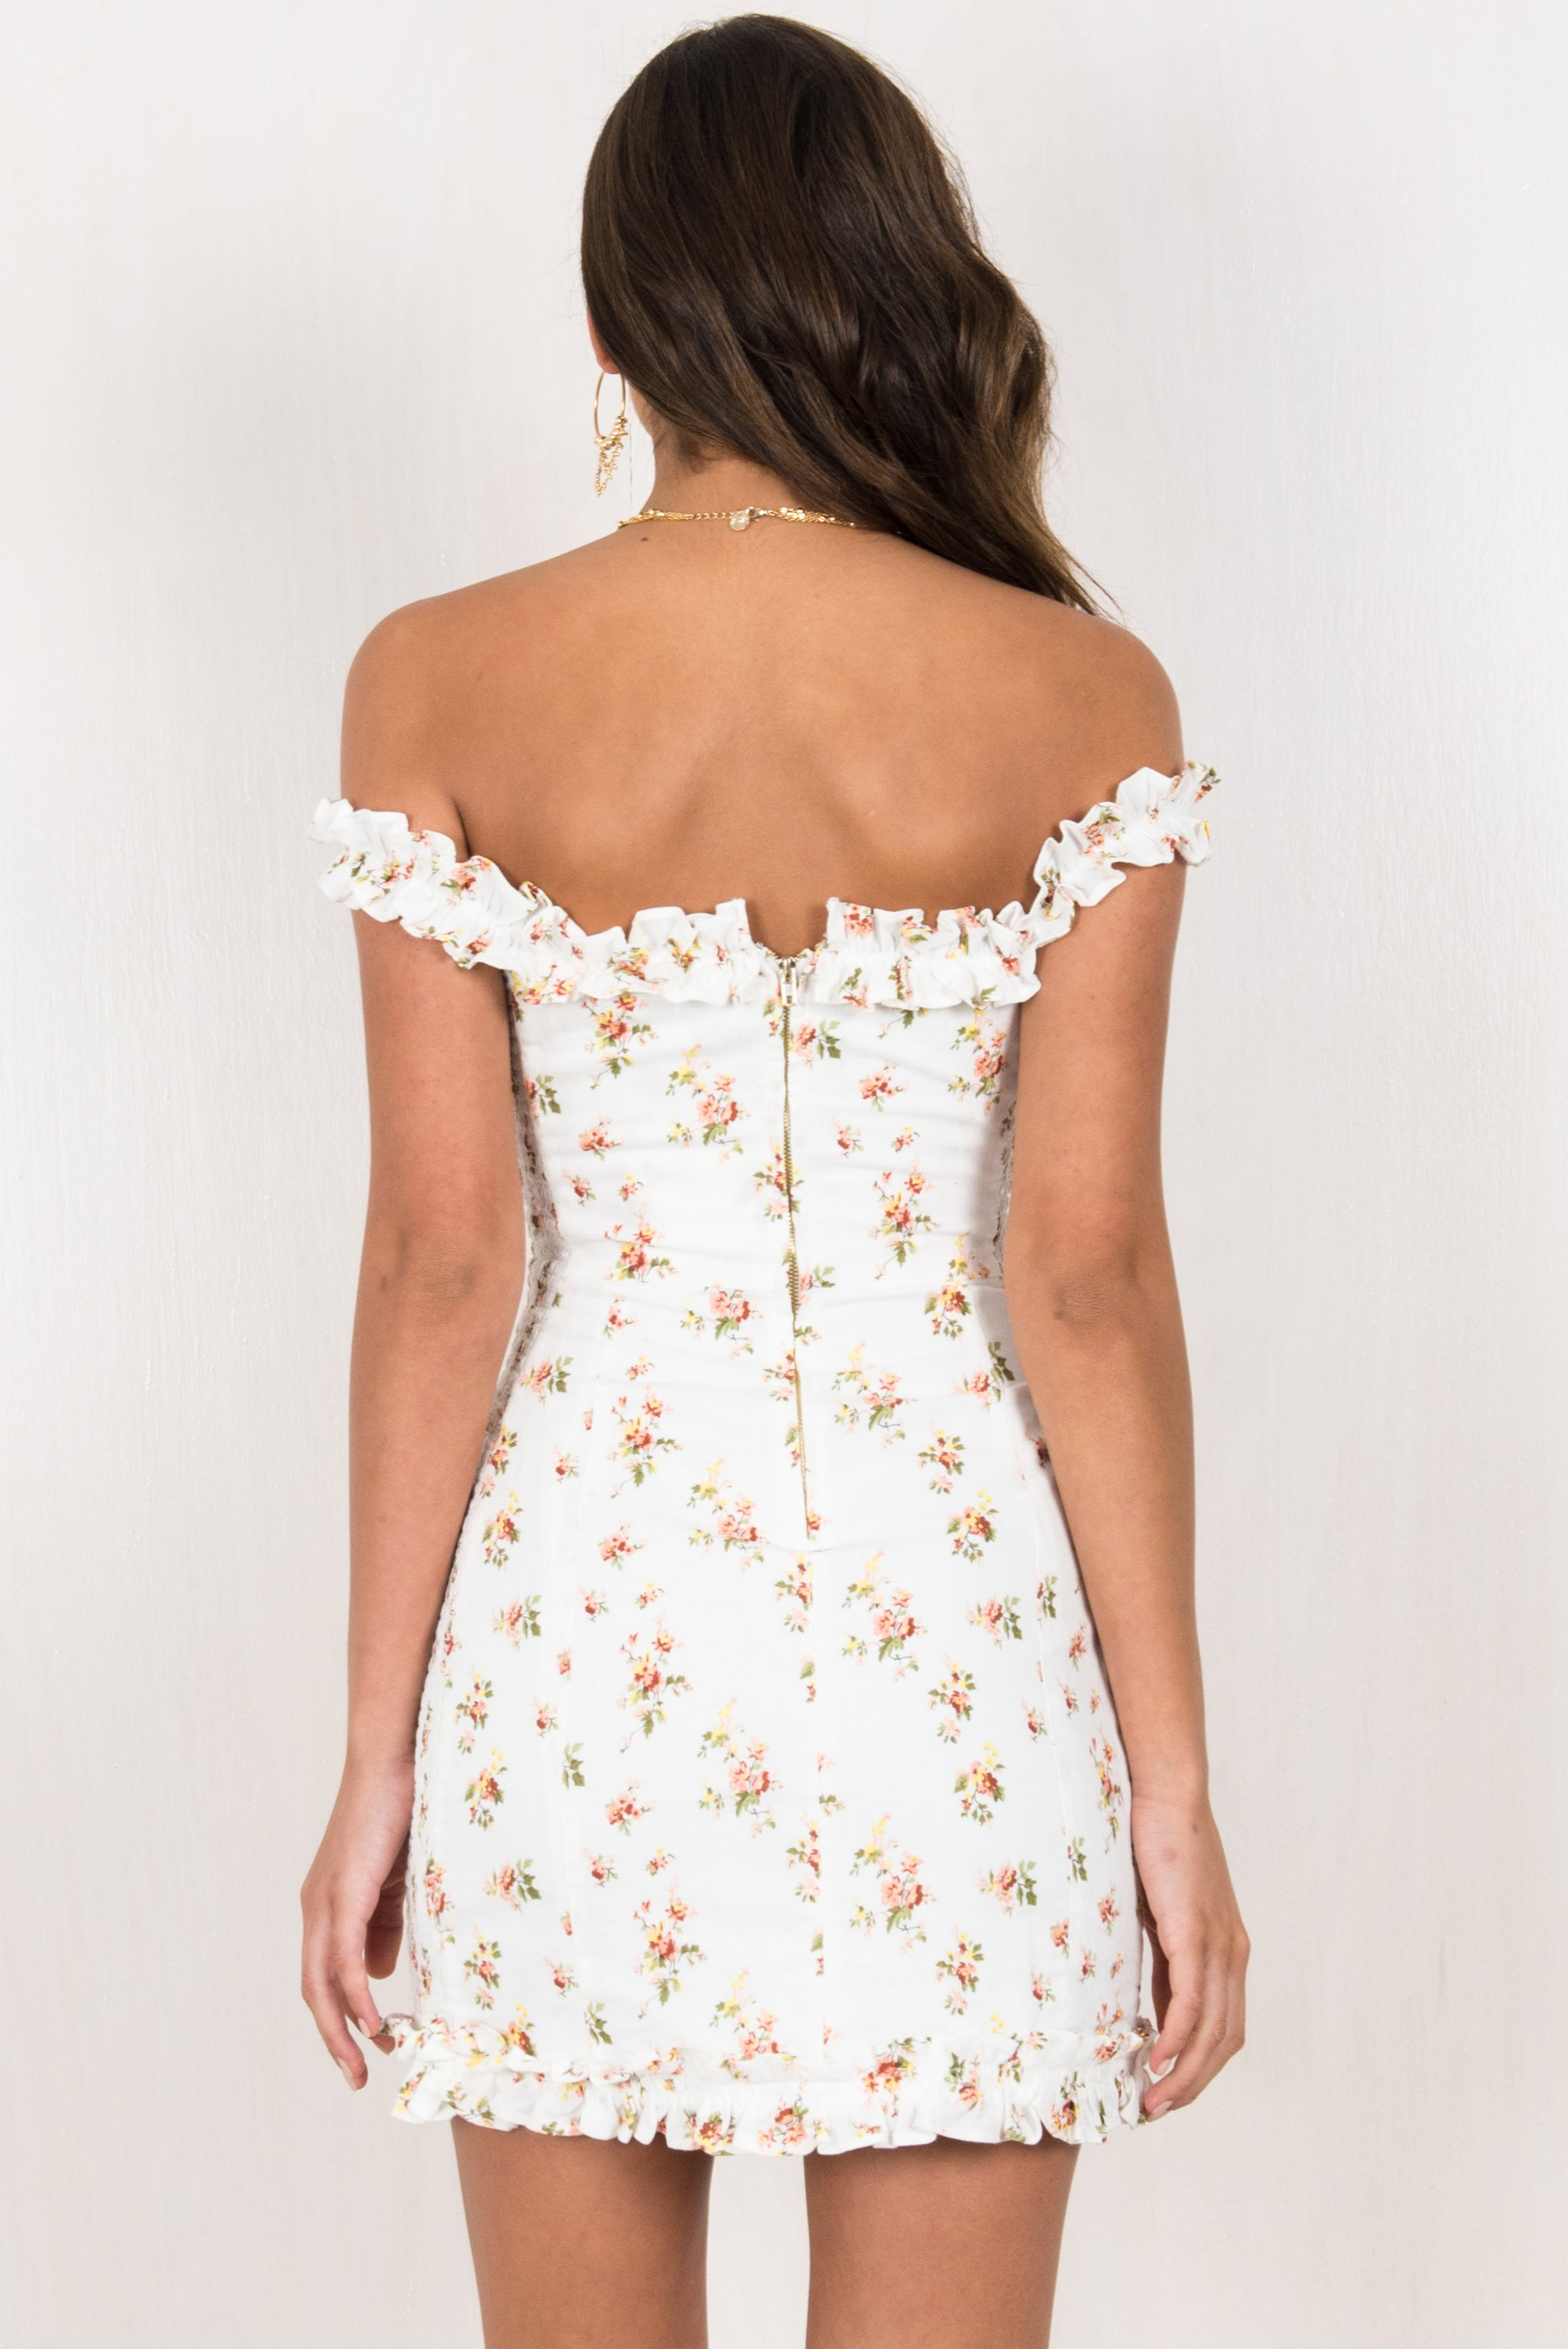 Senorita Dress / Floral